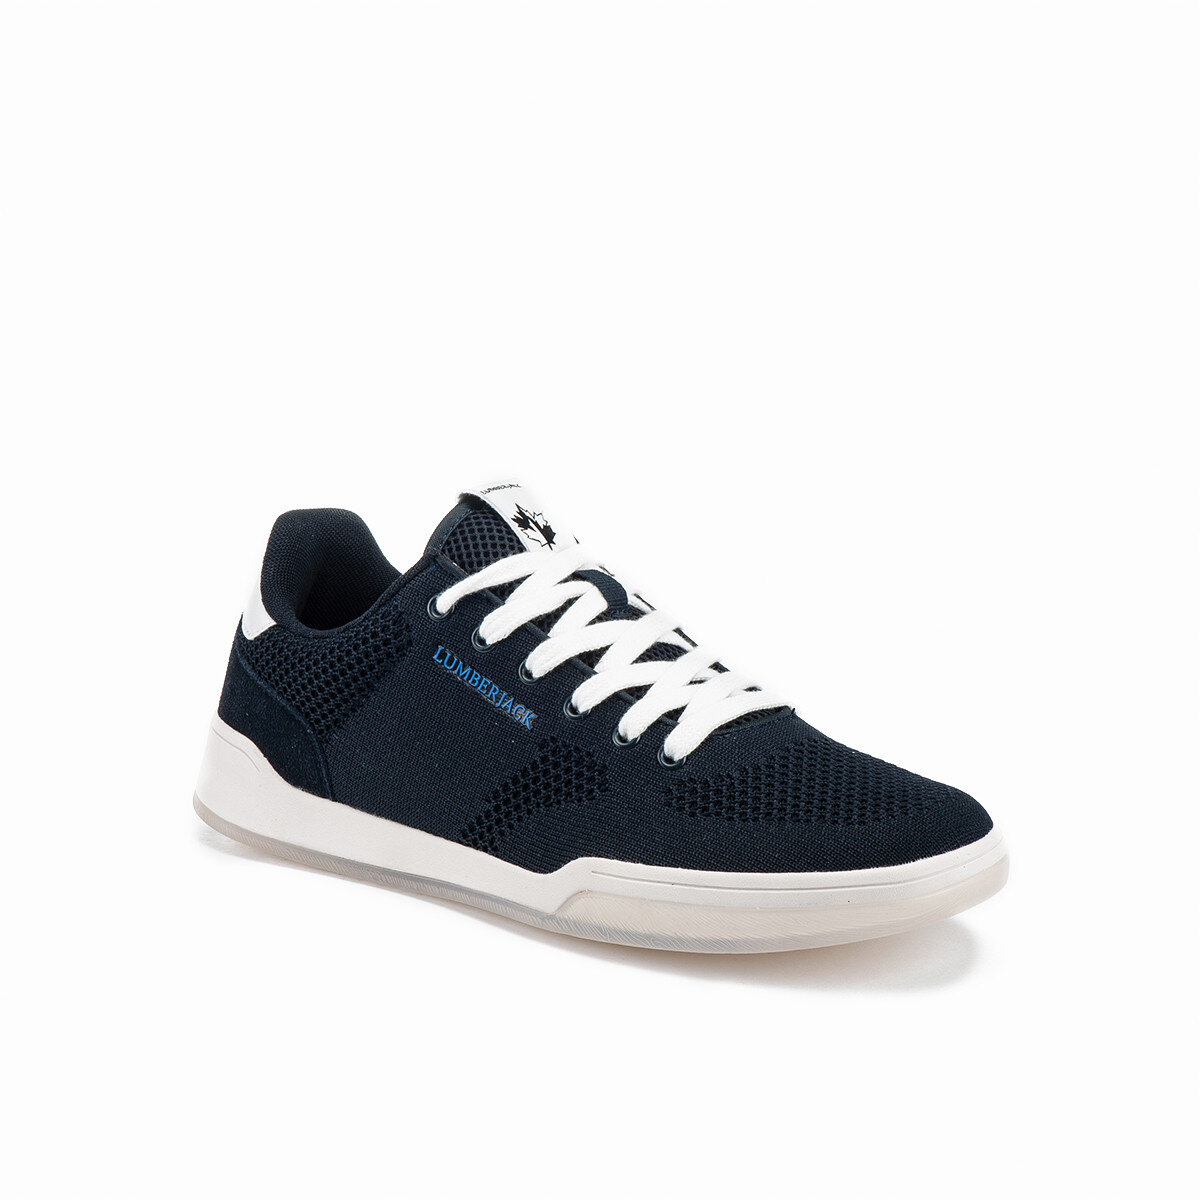 ELITE Sneakers Uomo